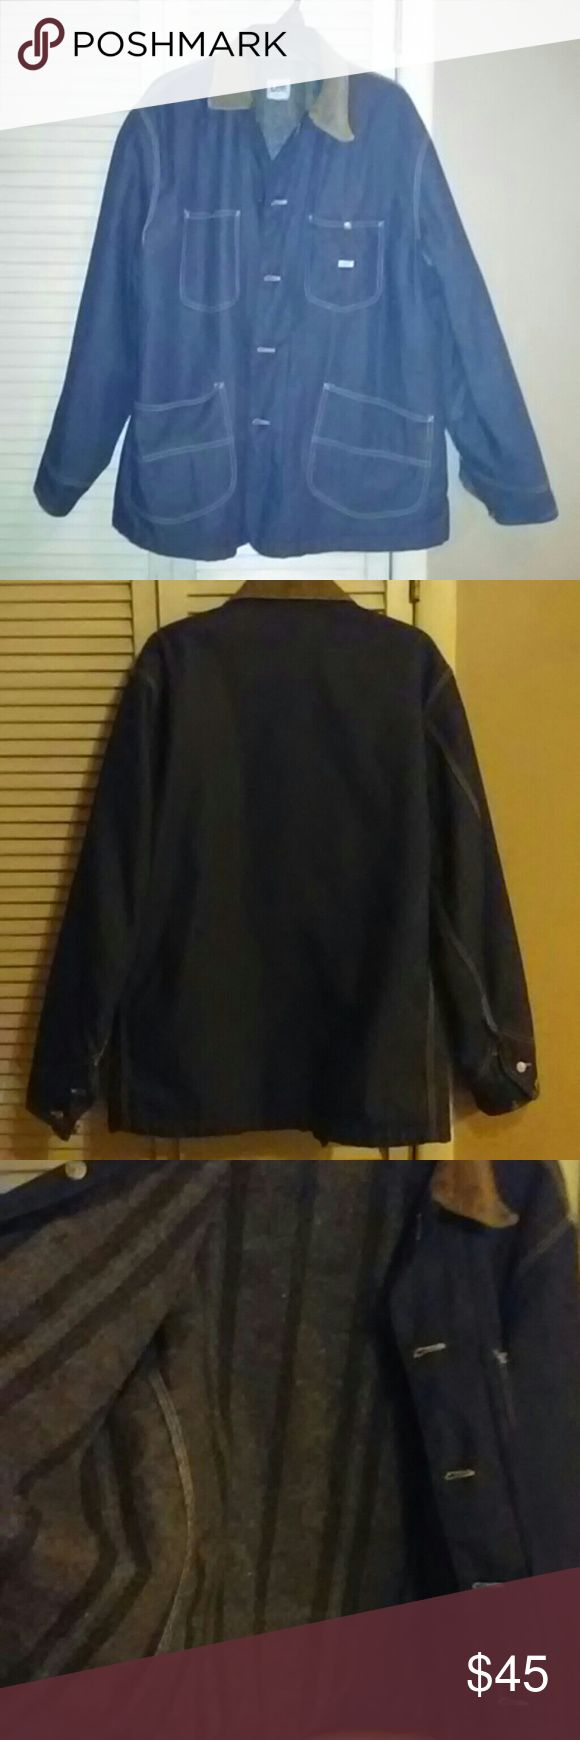 Vintage Lee field coat Vintage Lee brand barn coat or field coat. Used but in almost like new condition with no visible flaws. Raw denim with thick blanket non removable liner and tan corduroy collar. No size tag but it fits like a xl to me. All buttons and snaps are 100%. This coat will last a lifetime. Thanks Lee Jackets & Coats